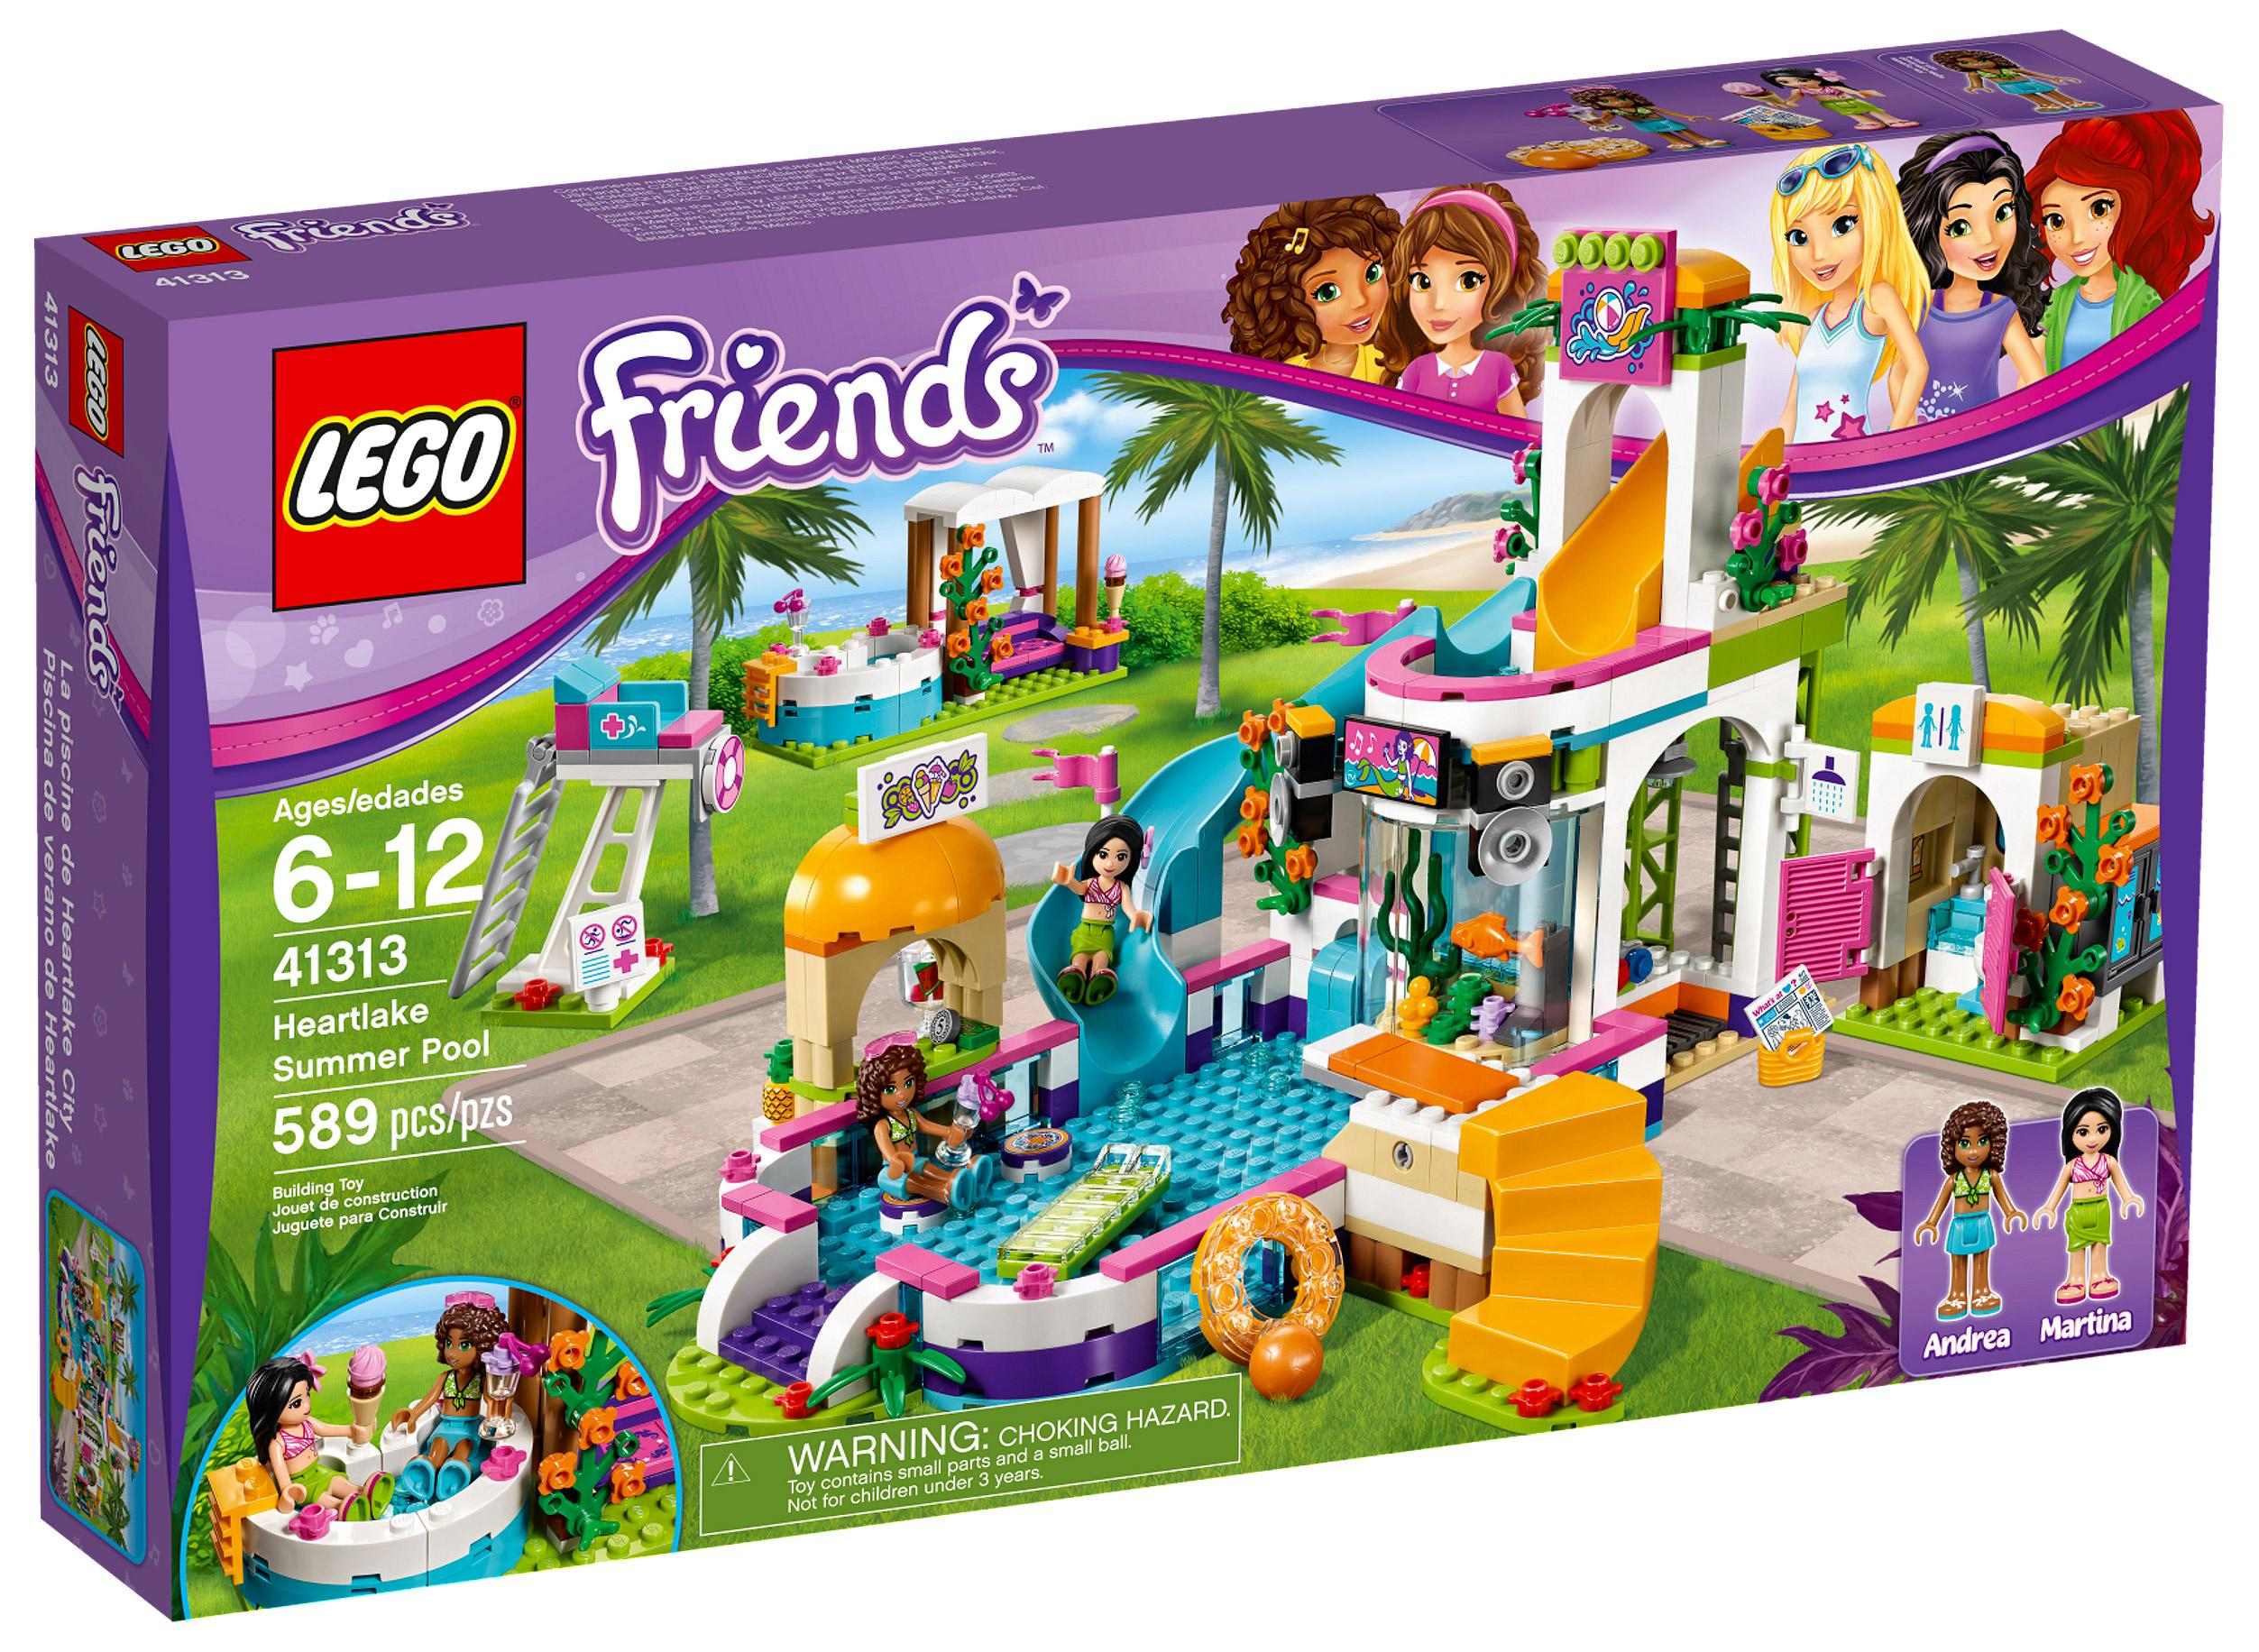 Lego Friends Heartlake Summer Pool (41313)